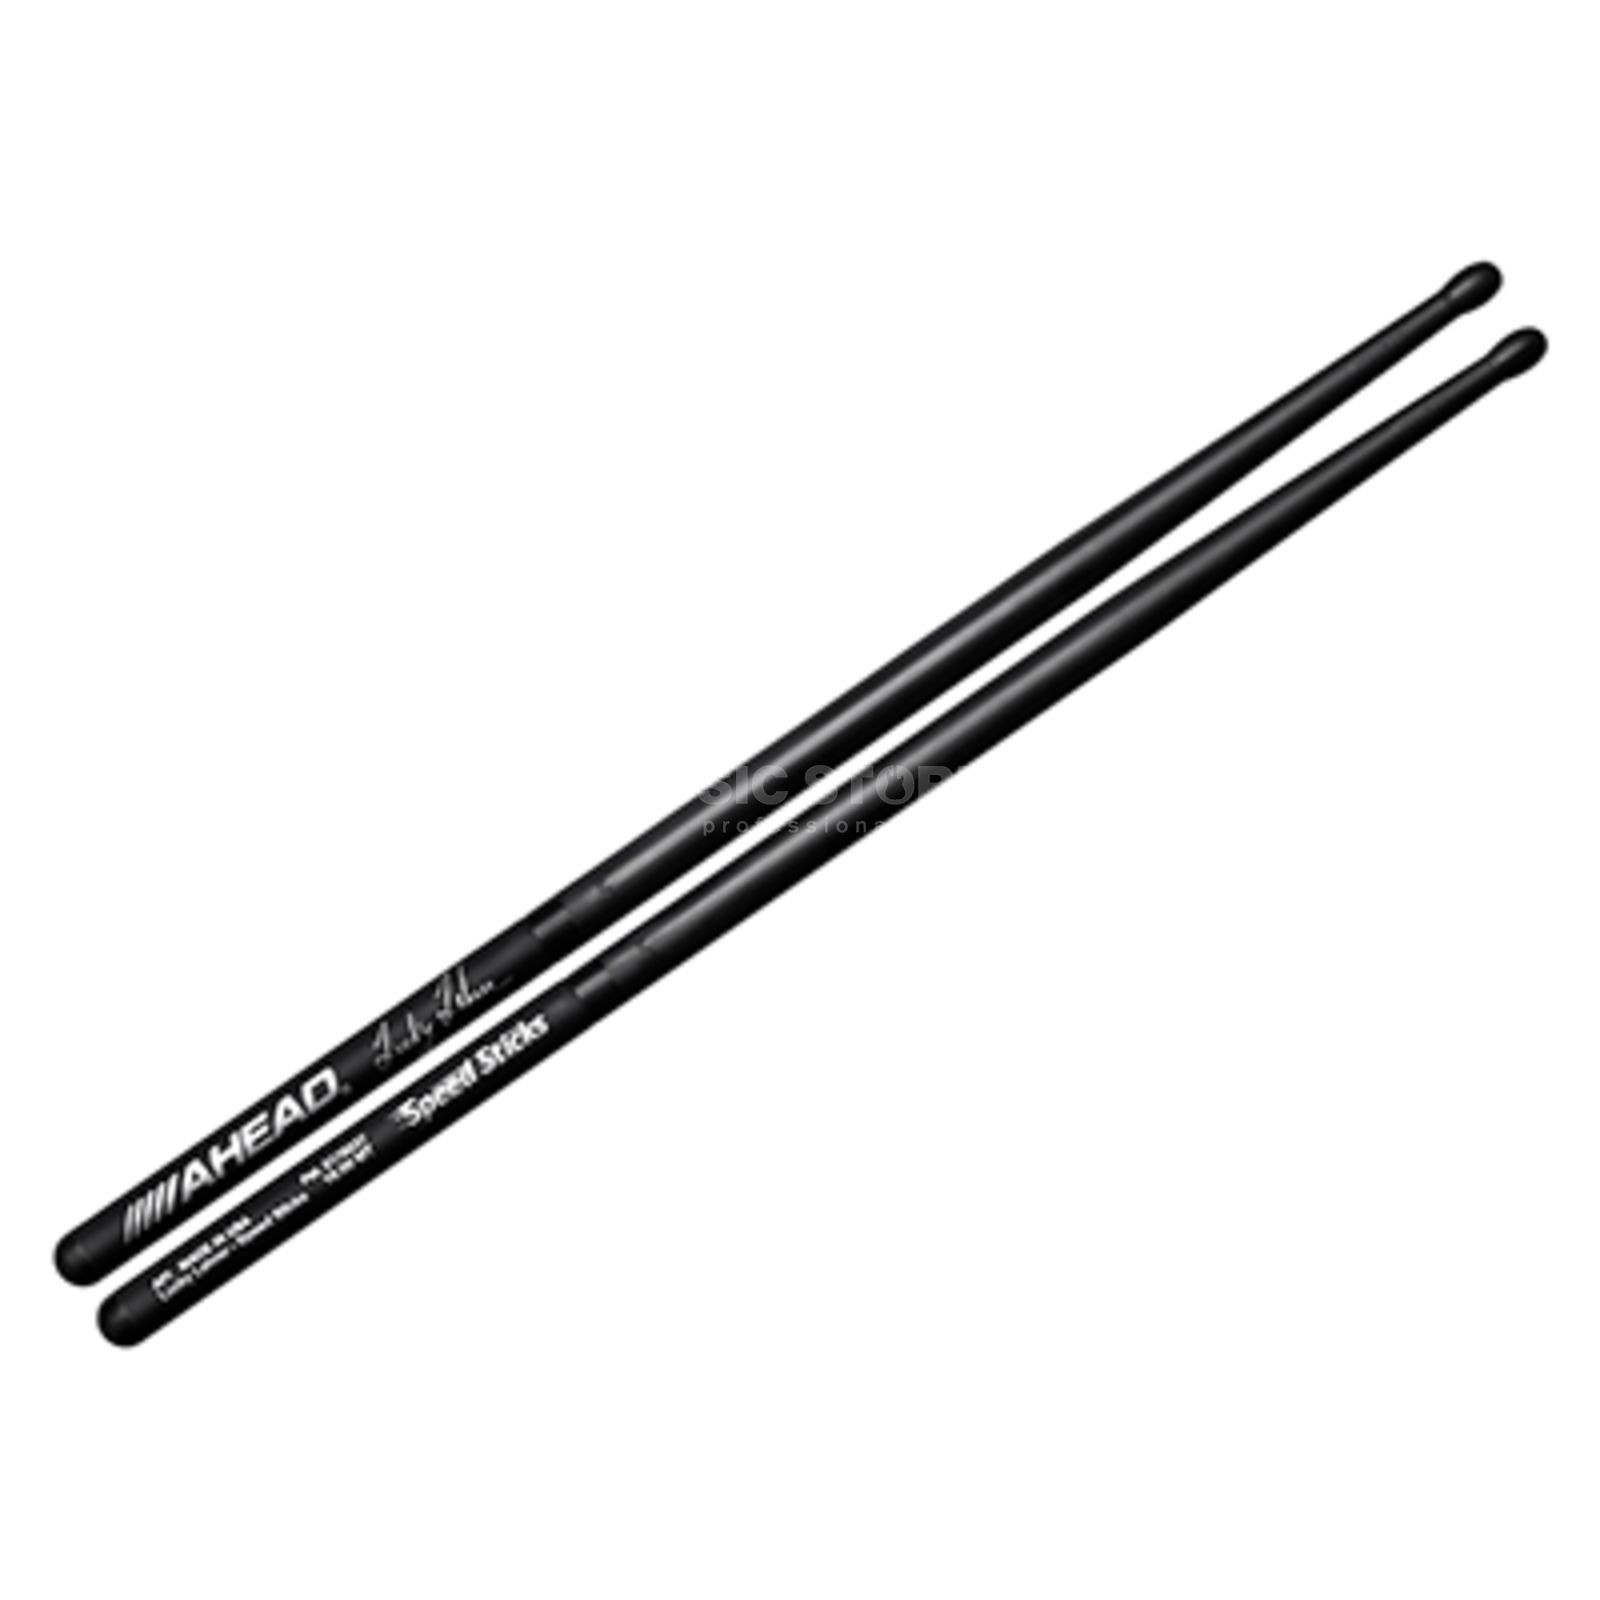 Ahead Sticks LL-SS Aluminium Sticks Medium Taper Produktbild